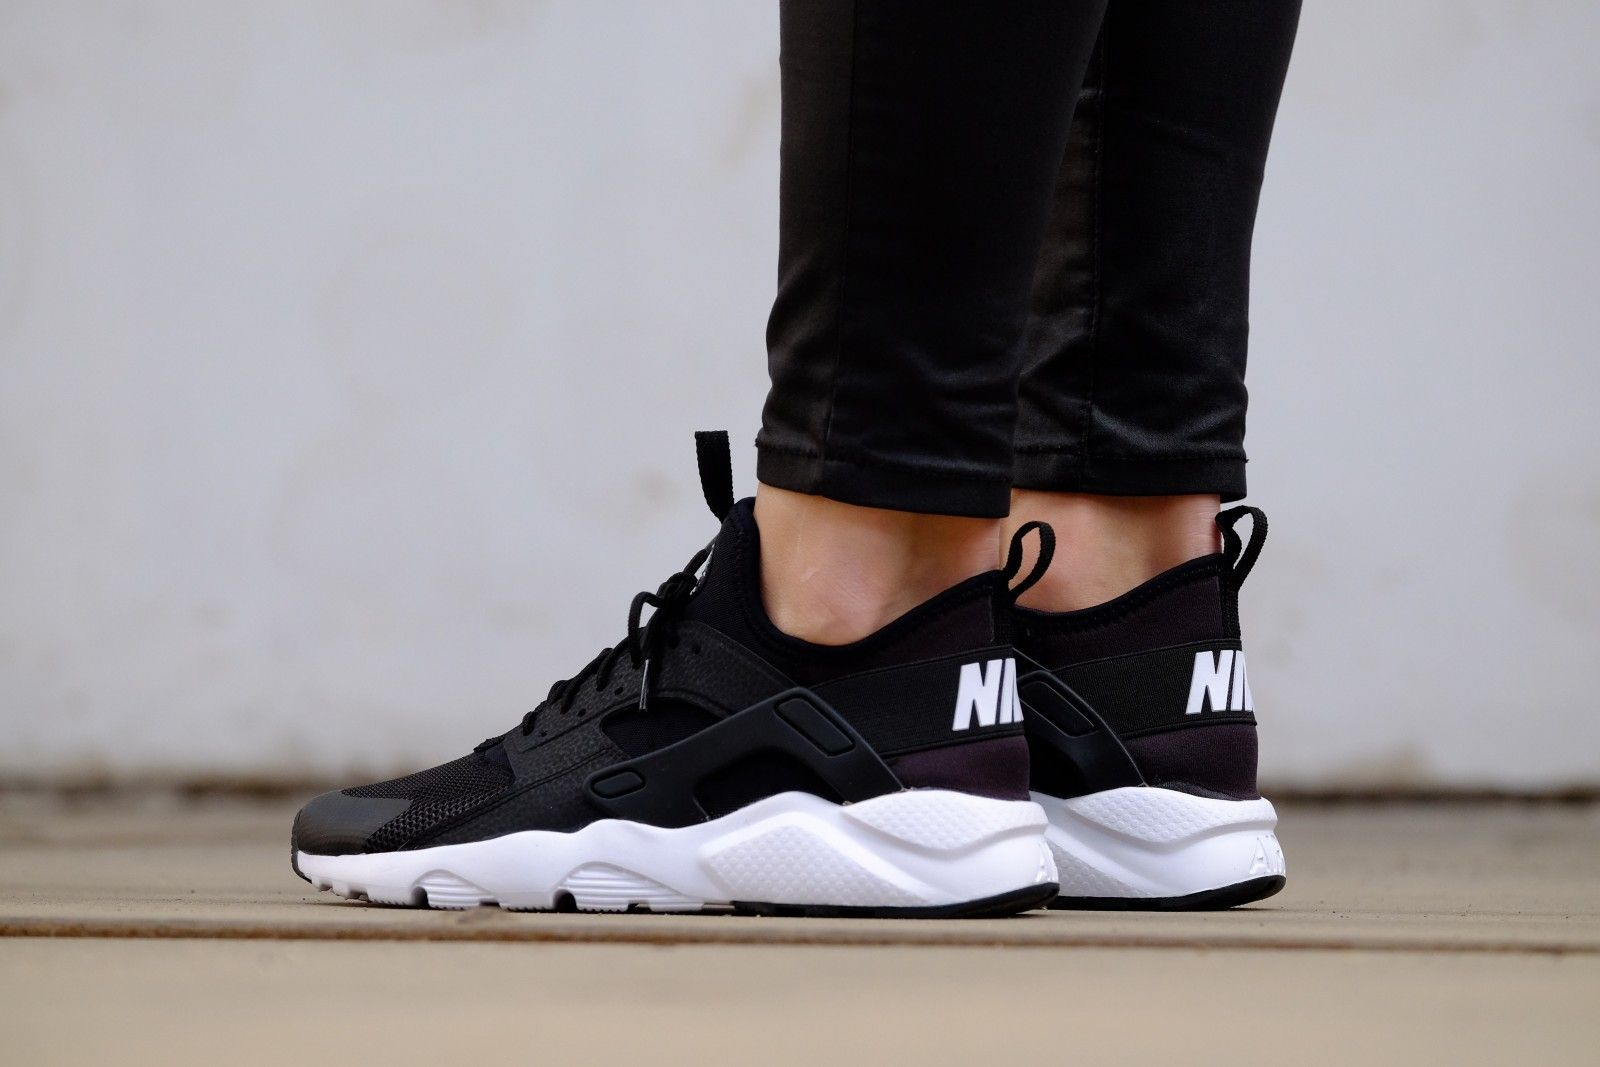 Nike Air Huarache Run Ultra GS Black  White - 847569-002  097d9189f